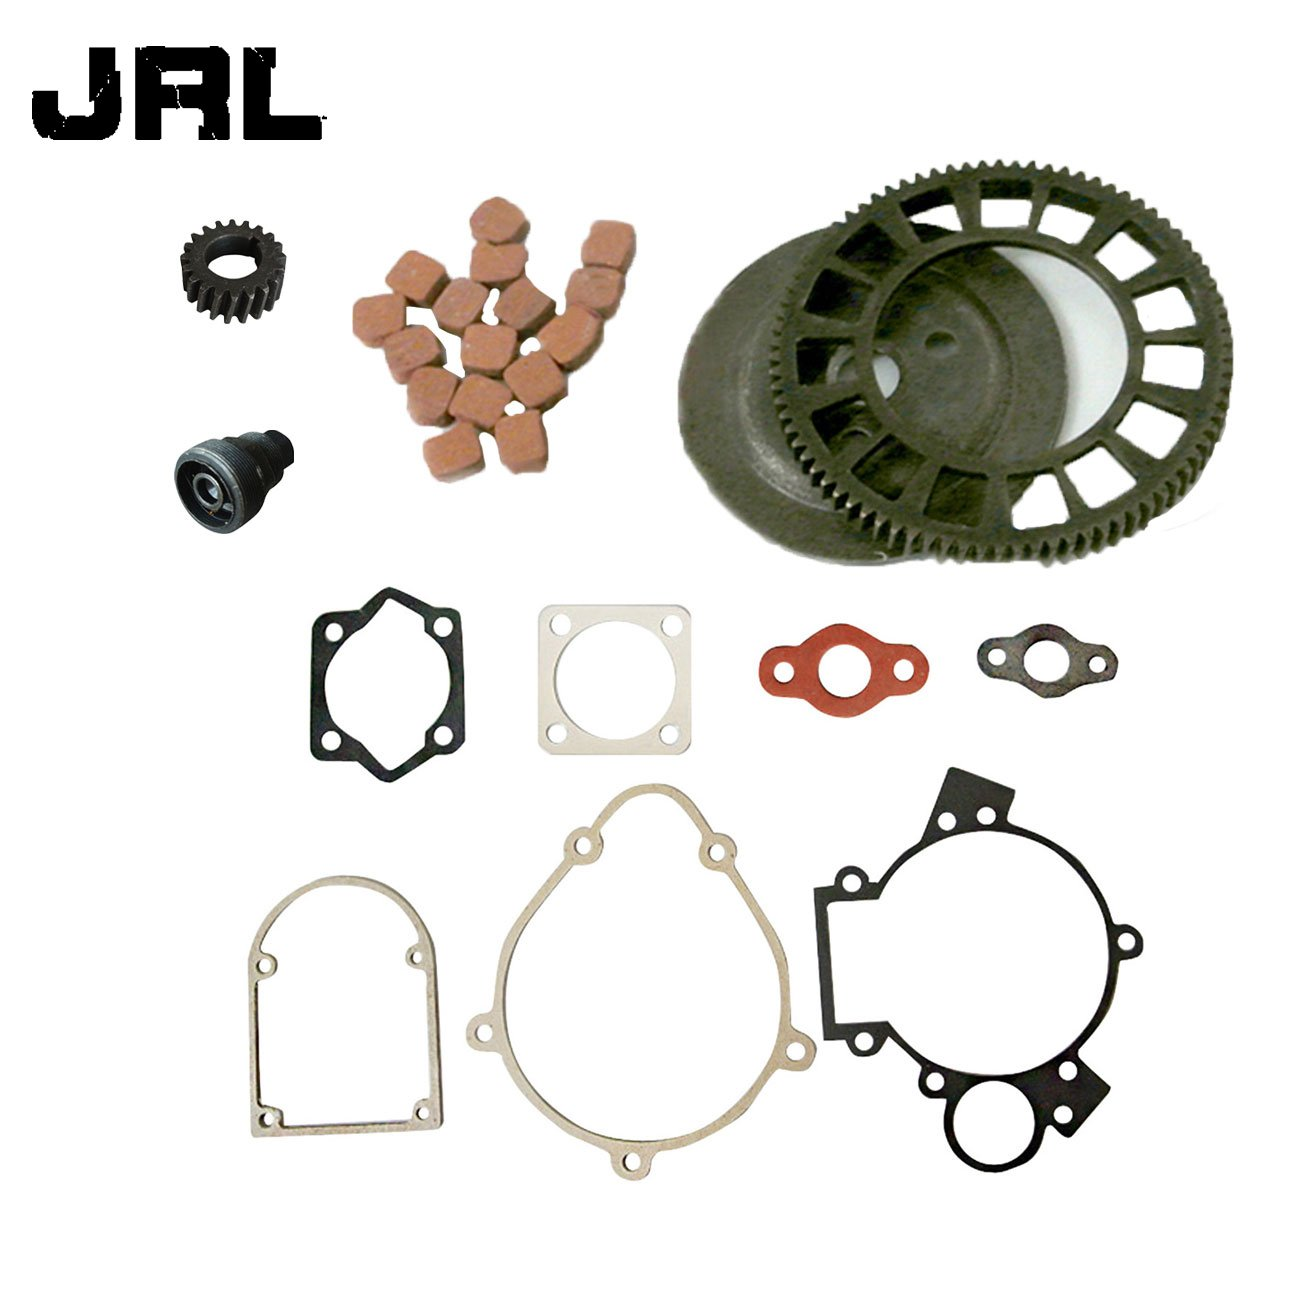 JRL Clutch Big Bevel Gear Friction Pads&Clutch Puller For 66/80cc Motorized Bicycle Huang Machinery